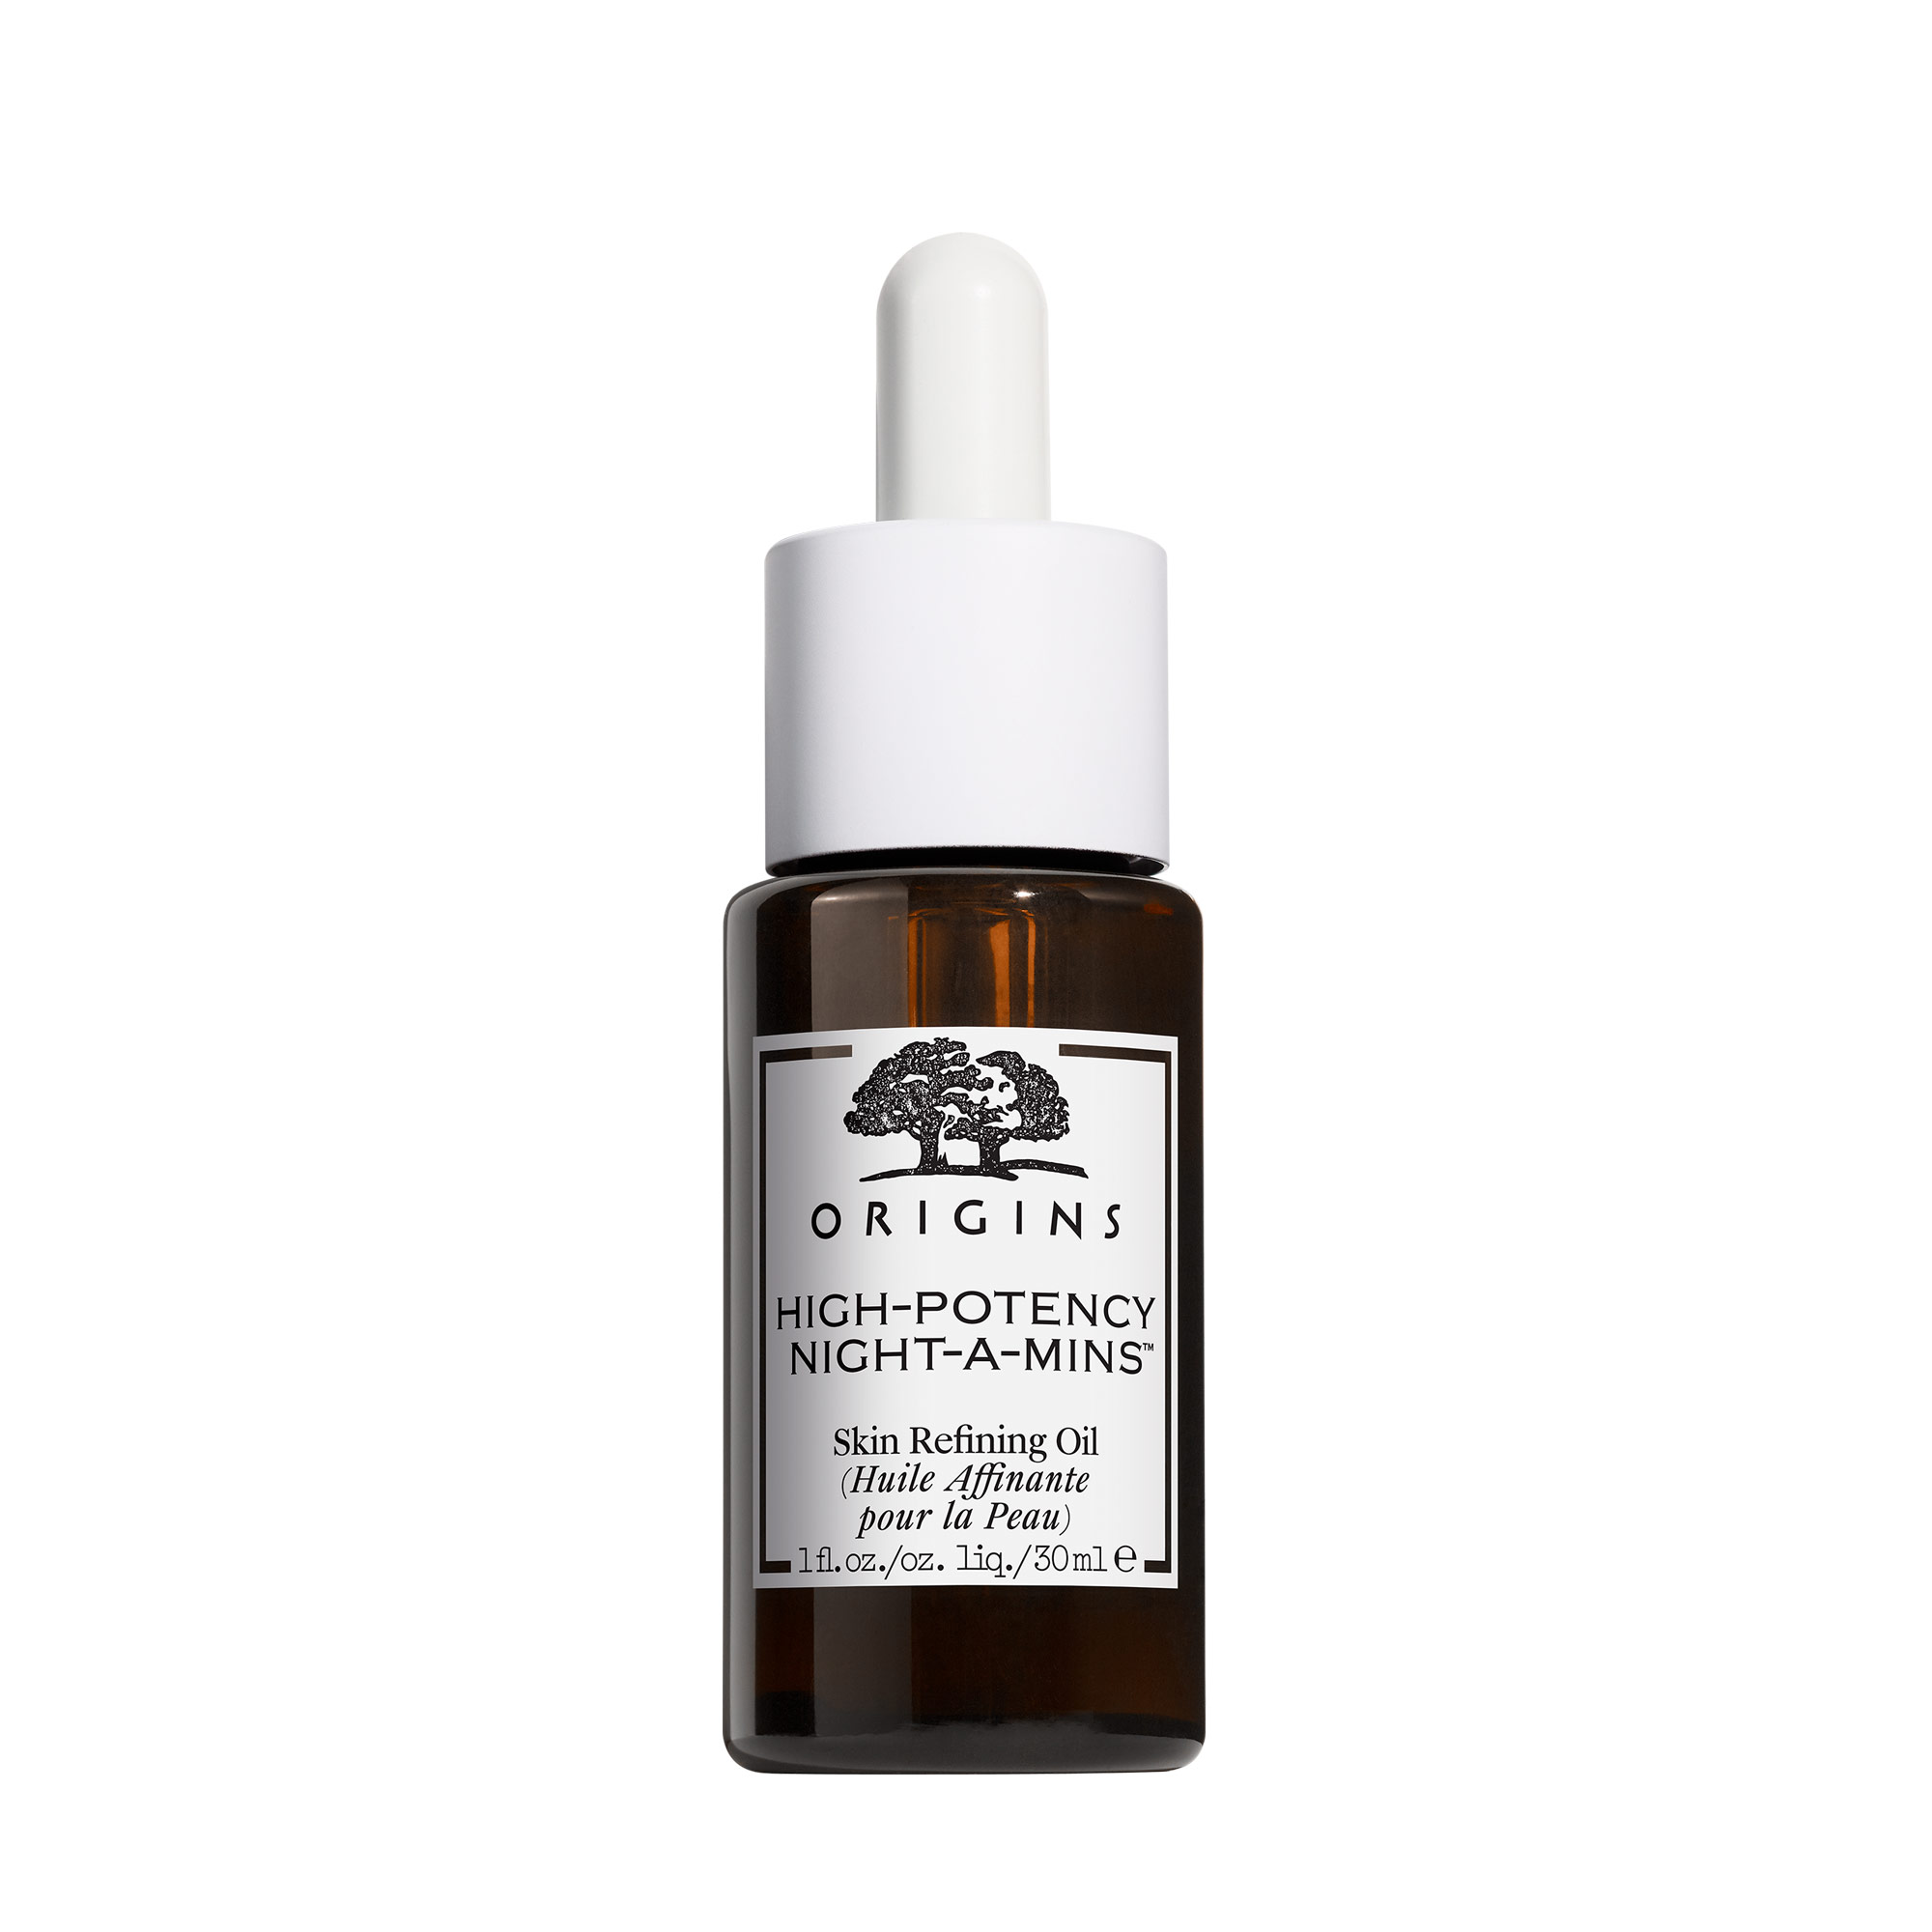 High Potency Night-A-Mins Skin Refining Oil